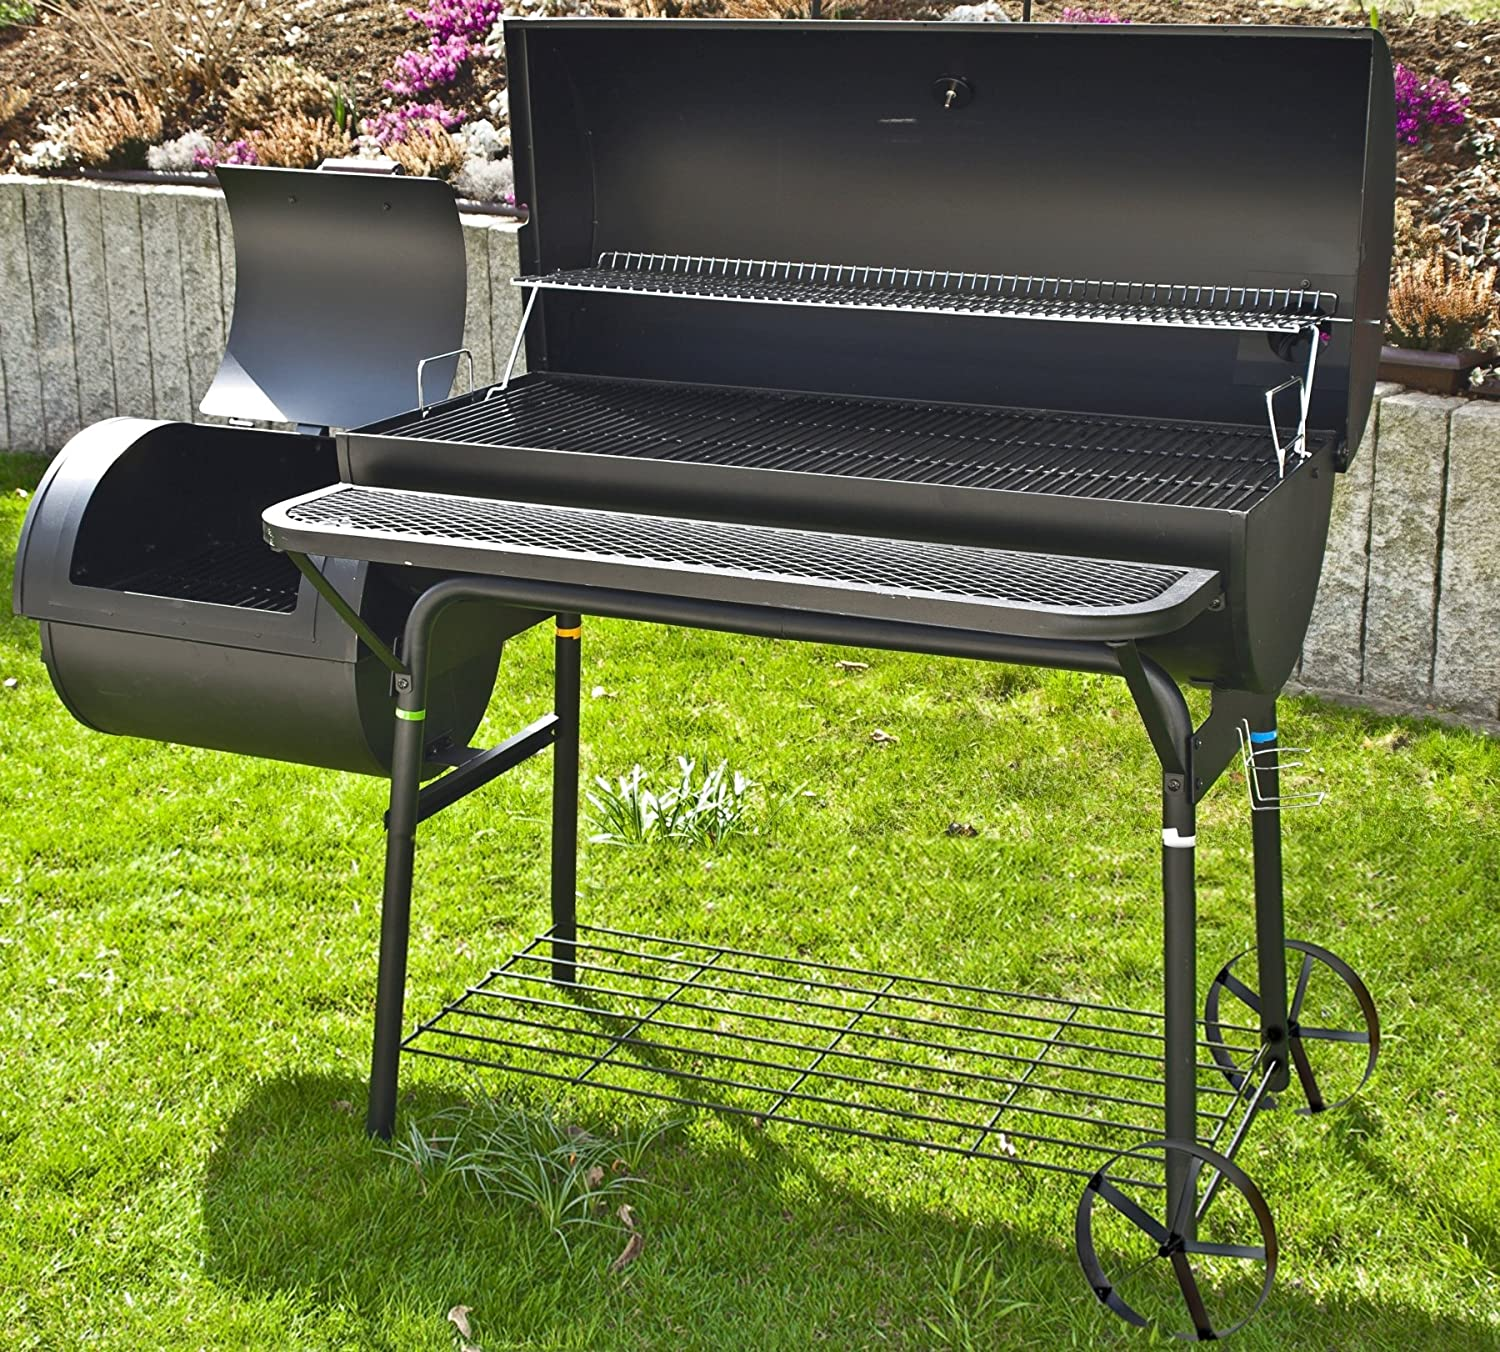 Smoker Grill Test